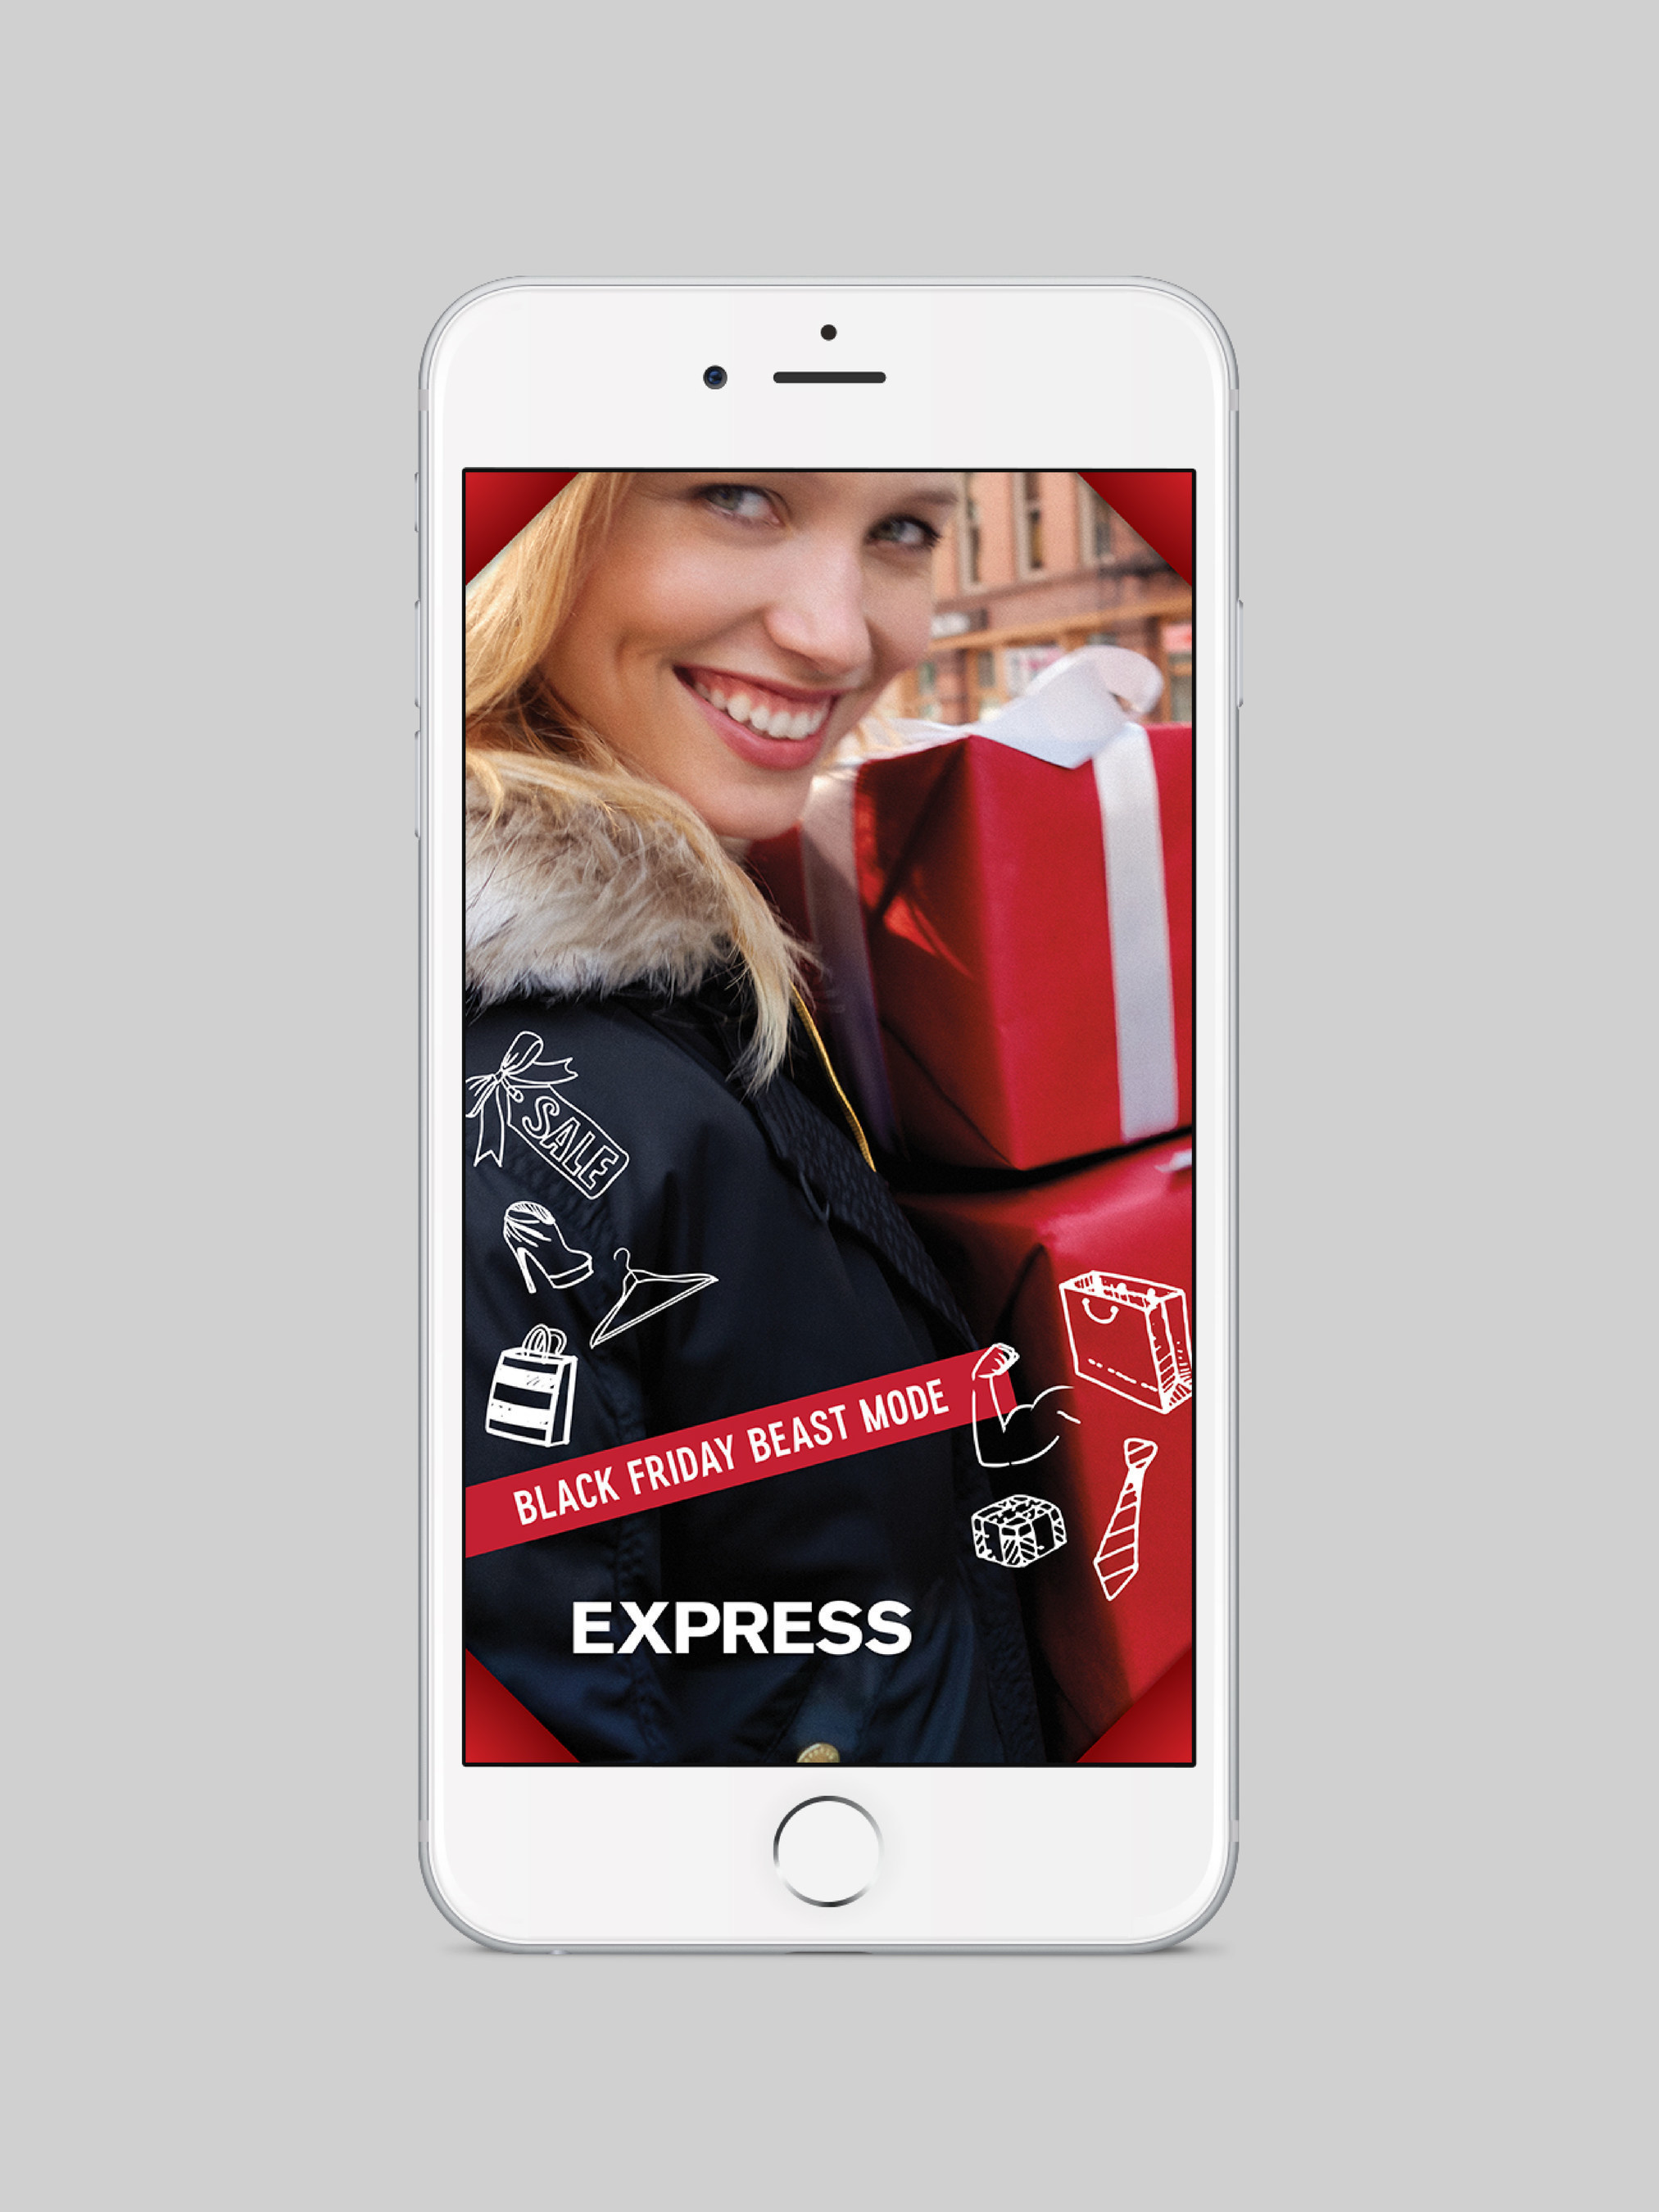 Express to Sponsor National Snapchat Filters on Black Friday